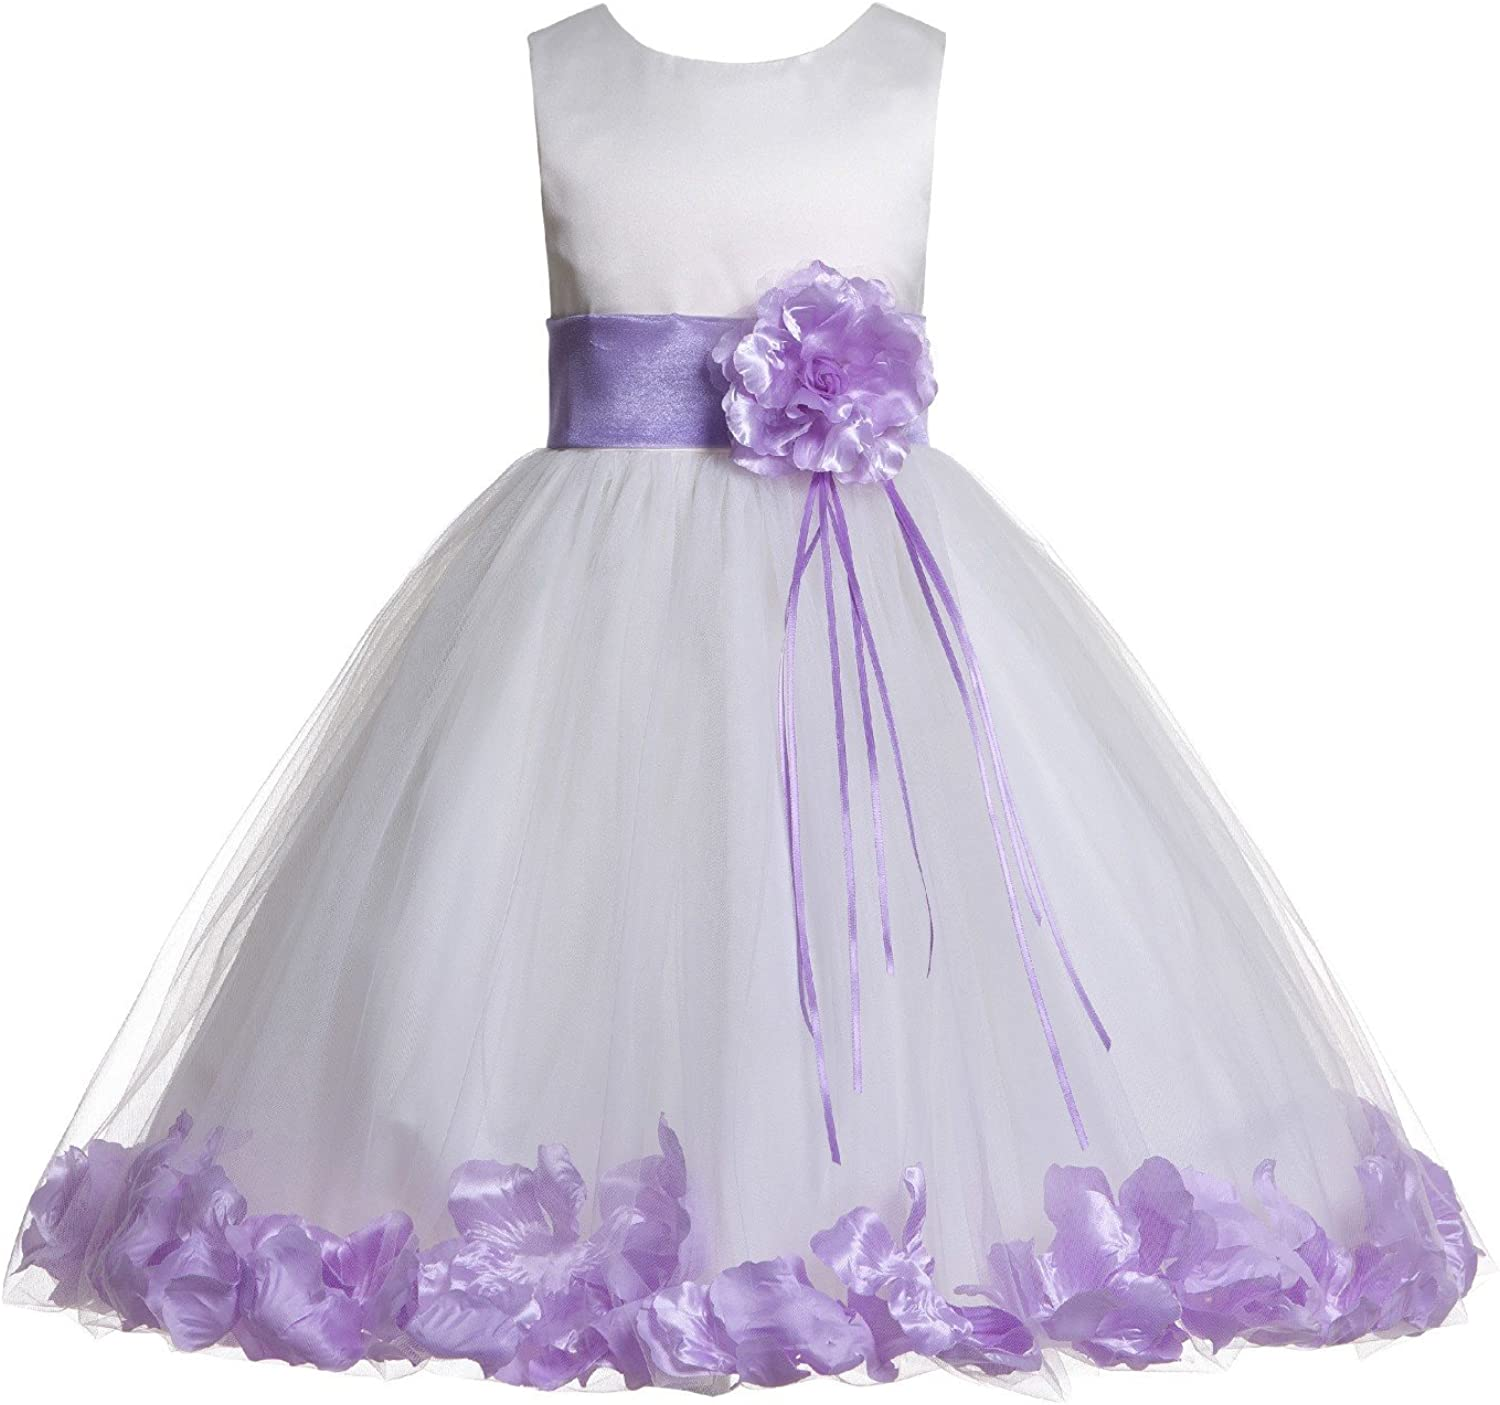 Wedding Pageant A surprise price is realized 67% OFF of fixed price Floral Rose Petals Dress Flower Tulle Girl Ivory